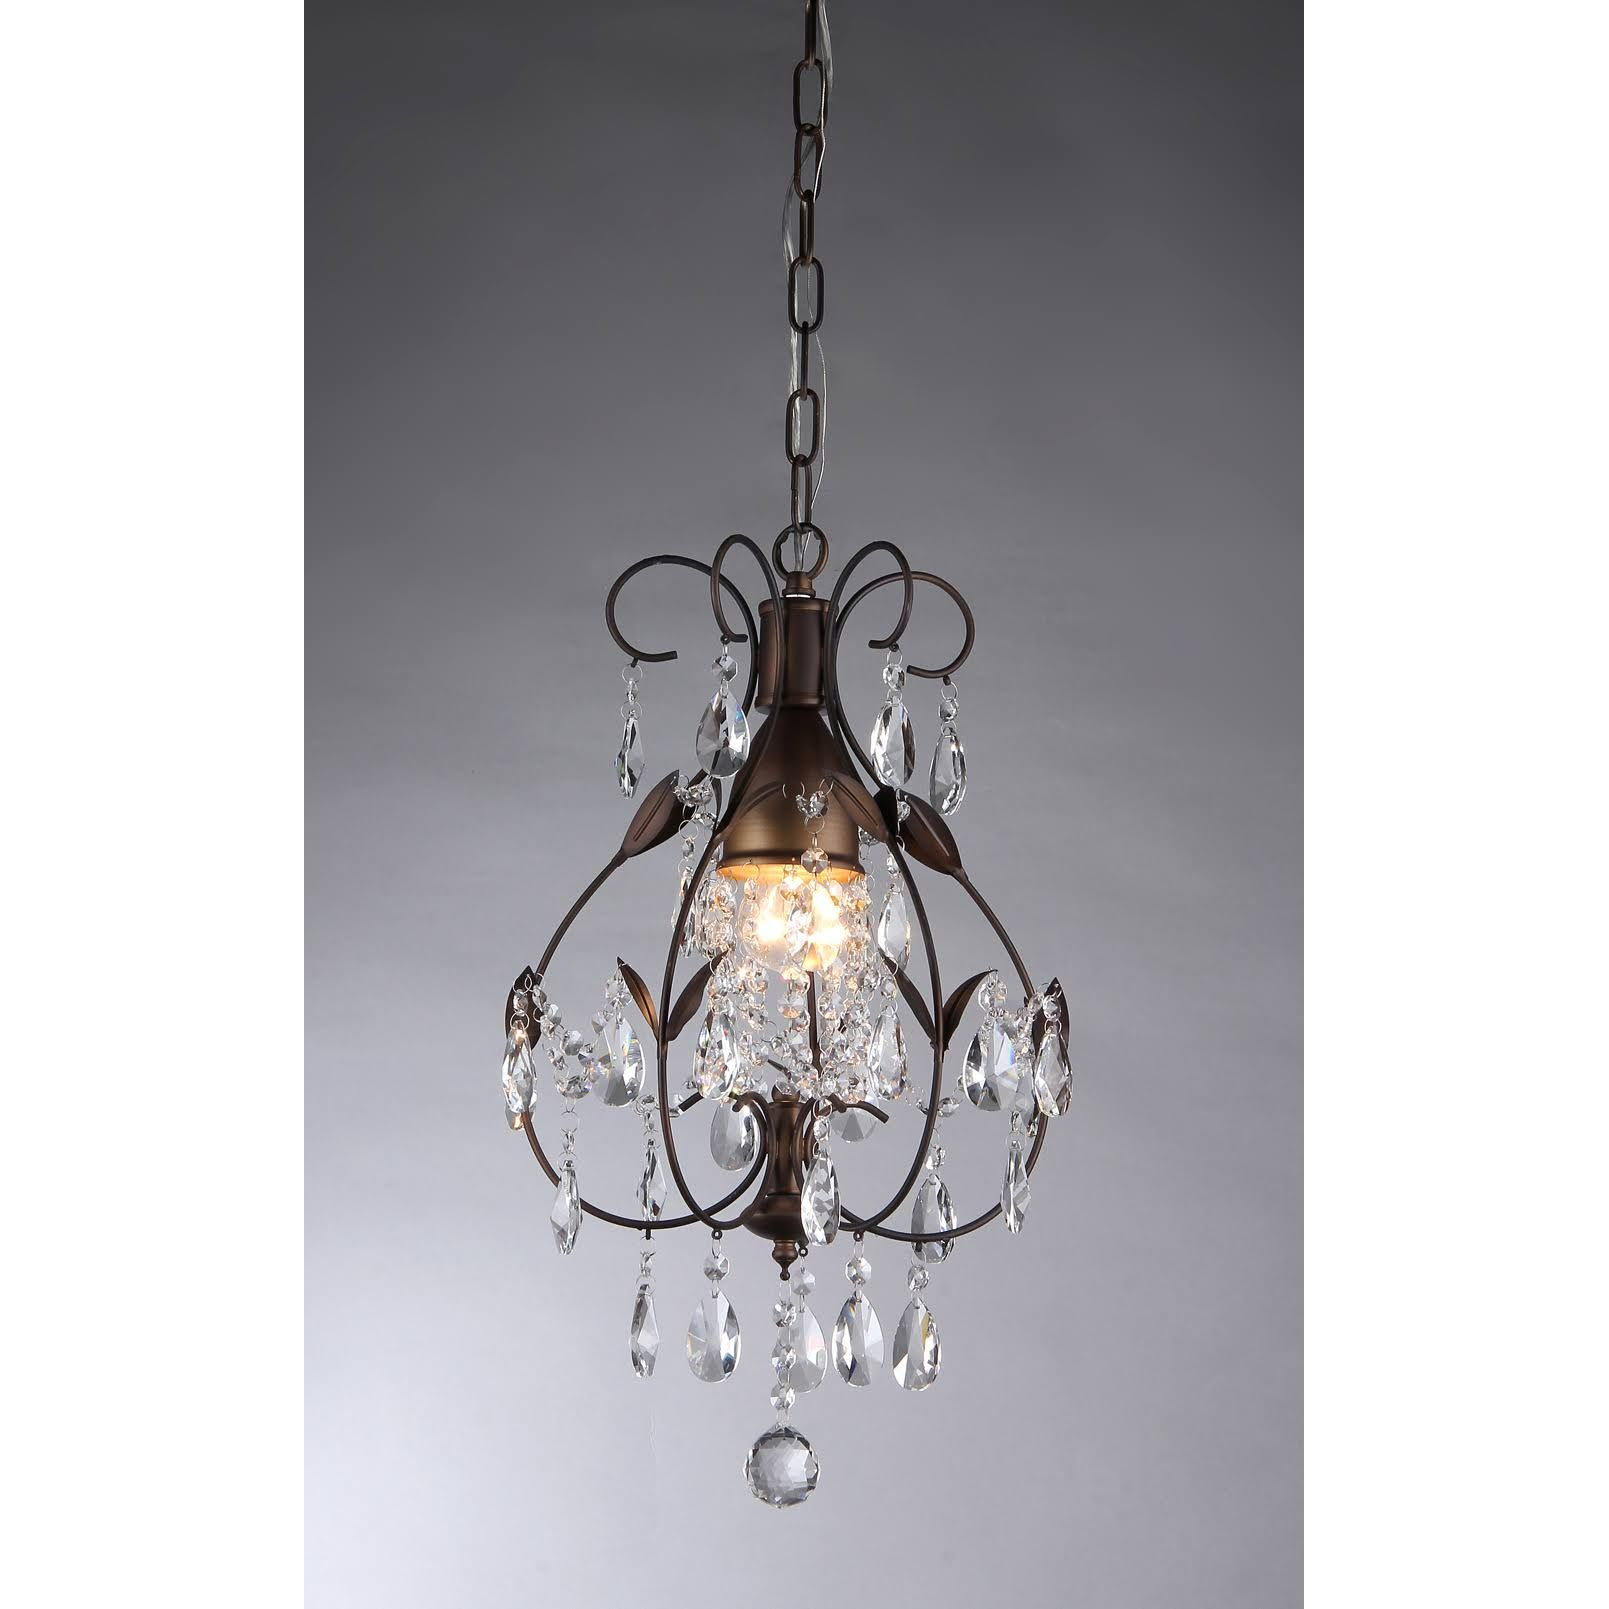 Over the bathtub? Warehouse of Tiffany RL8052 Maleficent Chandelier ...